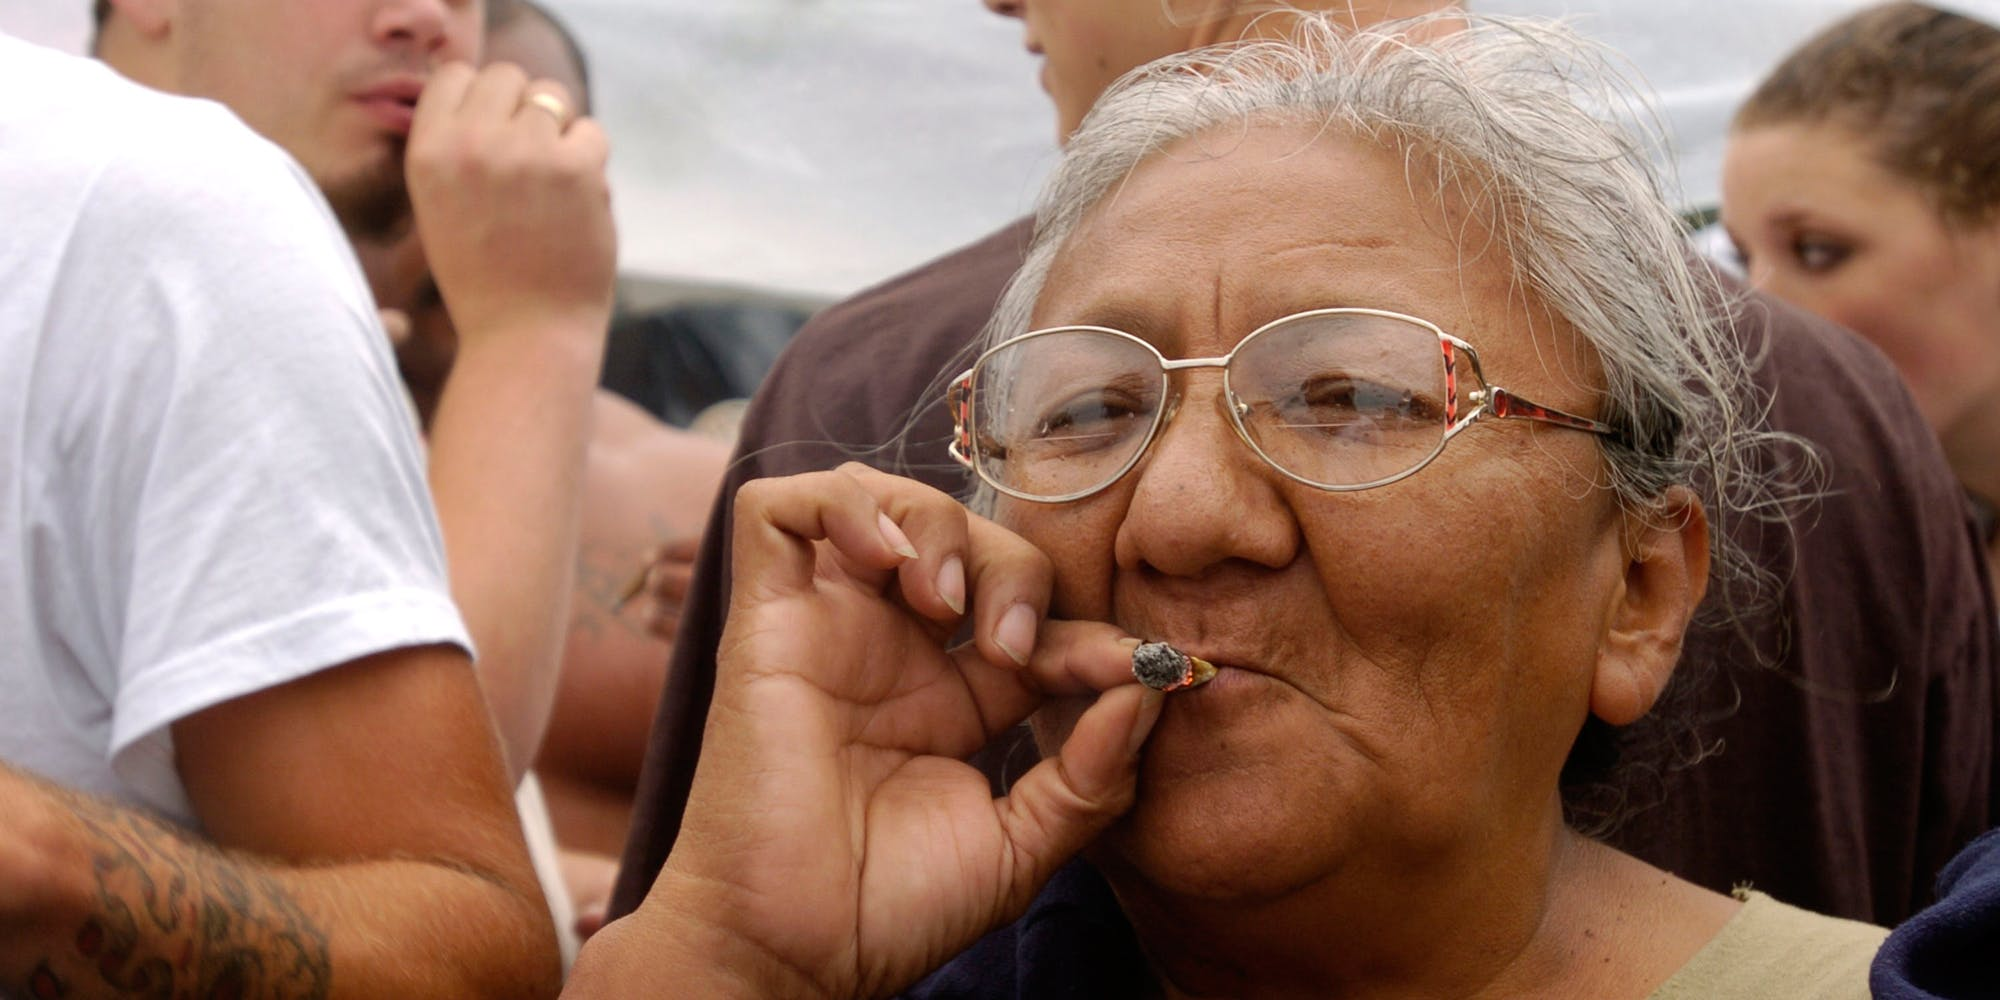 Older Americans Are 20x More Likely To Be Getting High Than They Were Thirty Years Ago